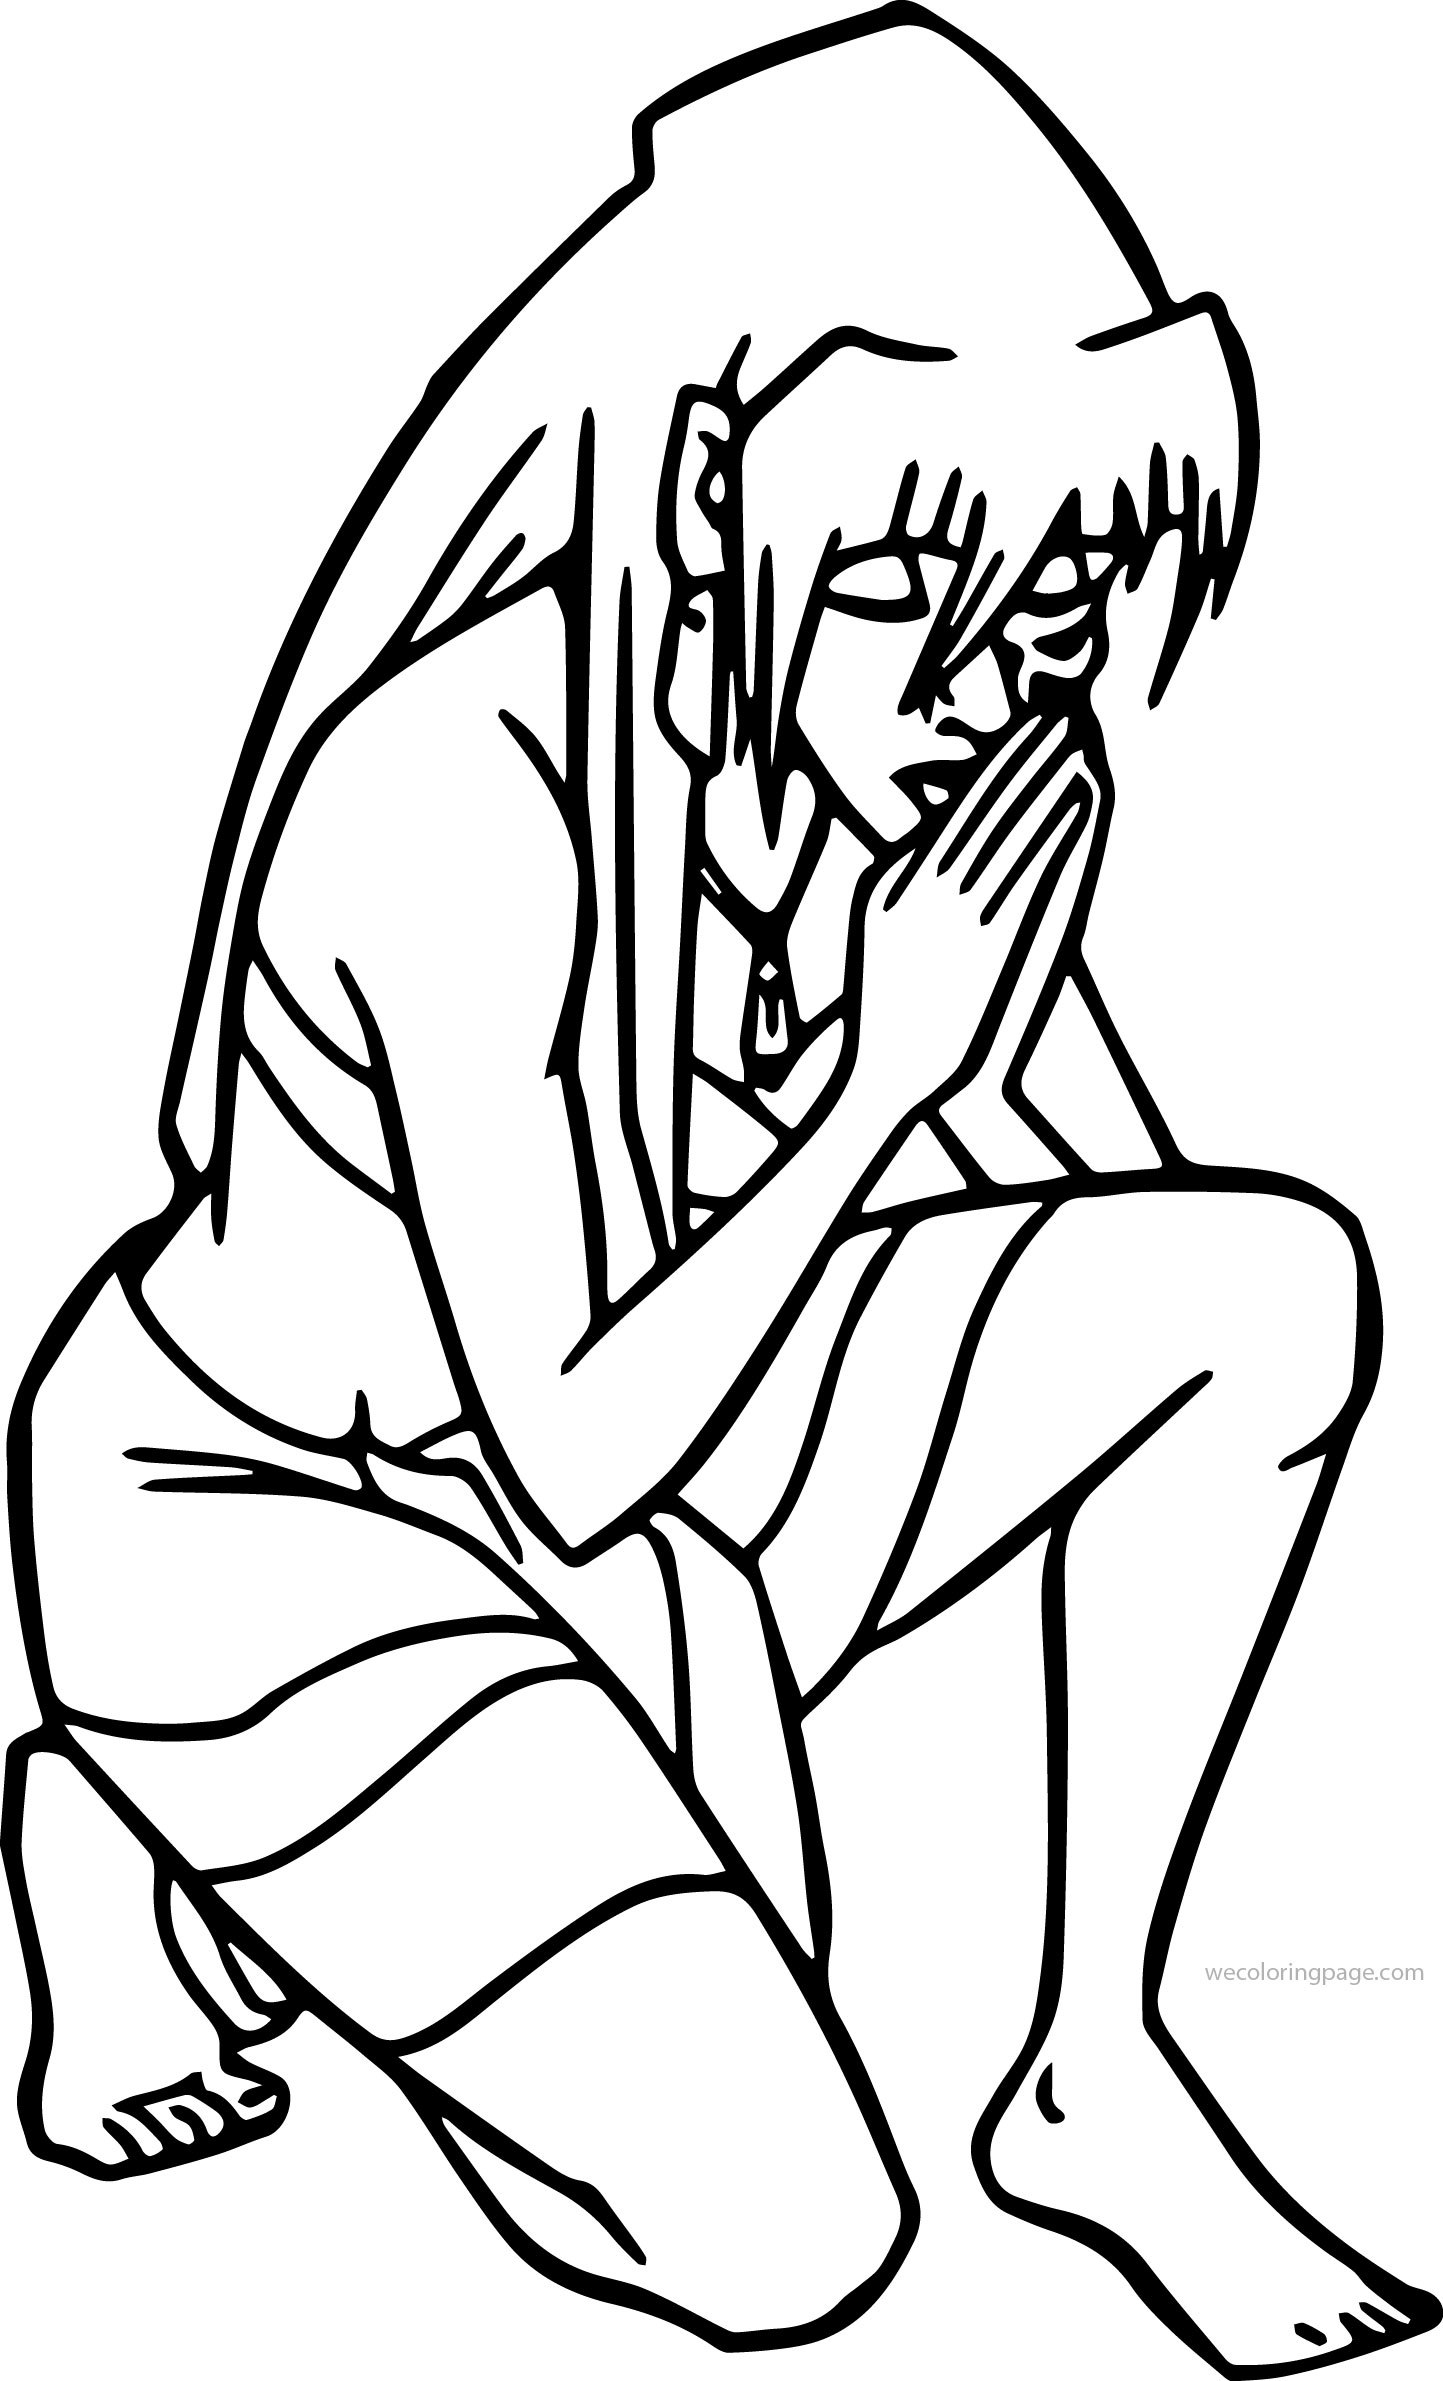 Atlantis The Lost Empire Princess Kida Prayer Best Coloring Page